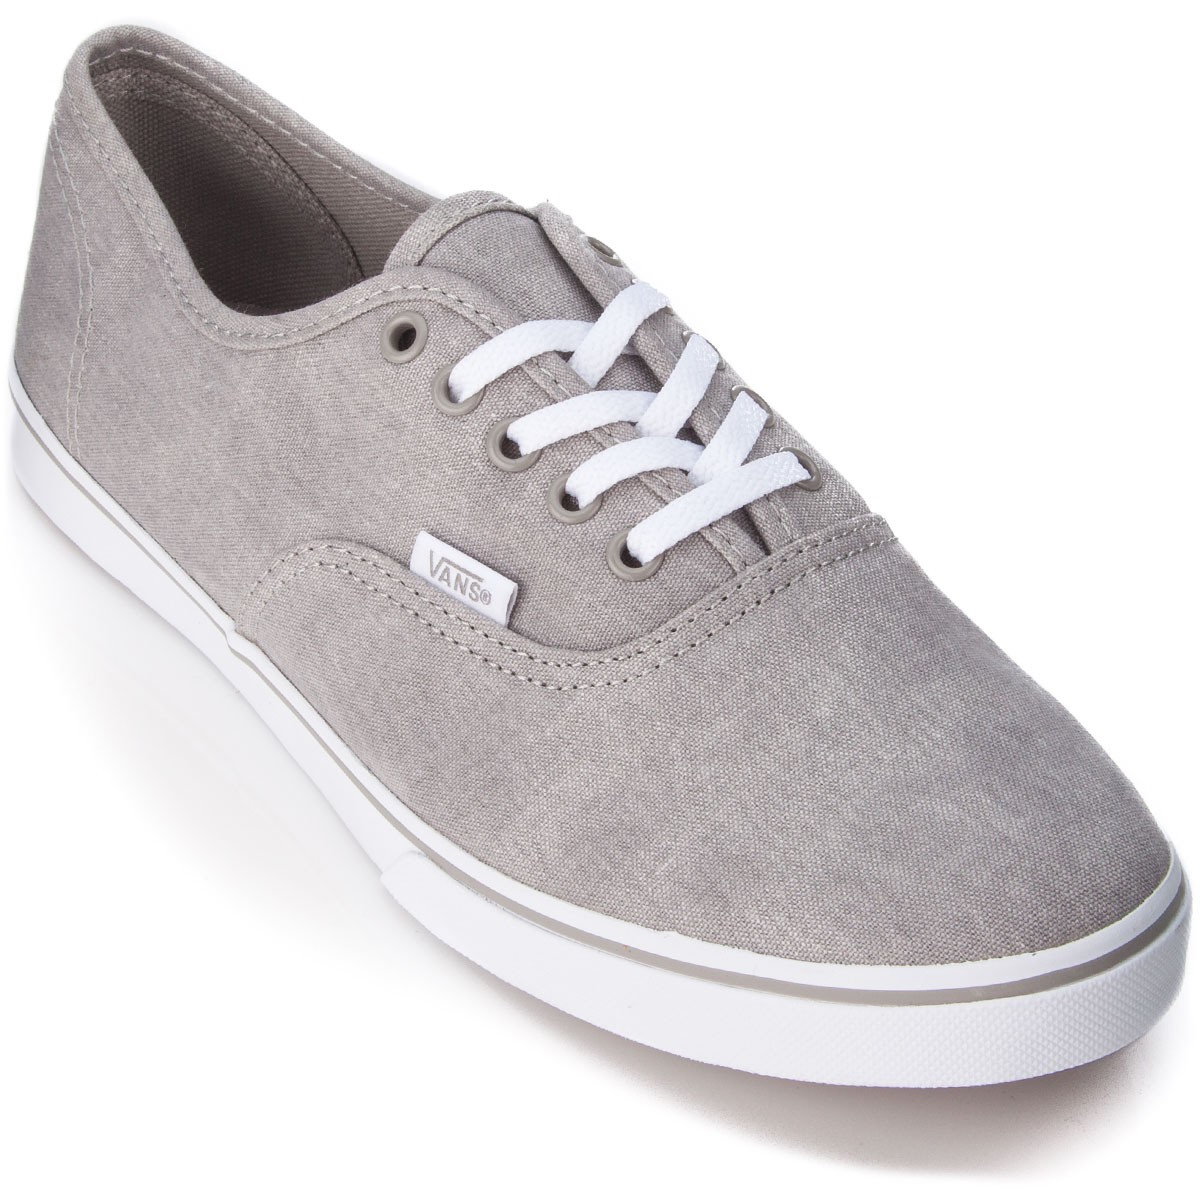 f1f4258e07e0 Vans Authentic Lo Pro Womens Shoes